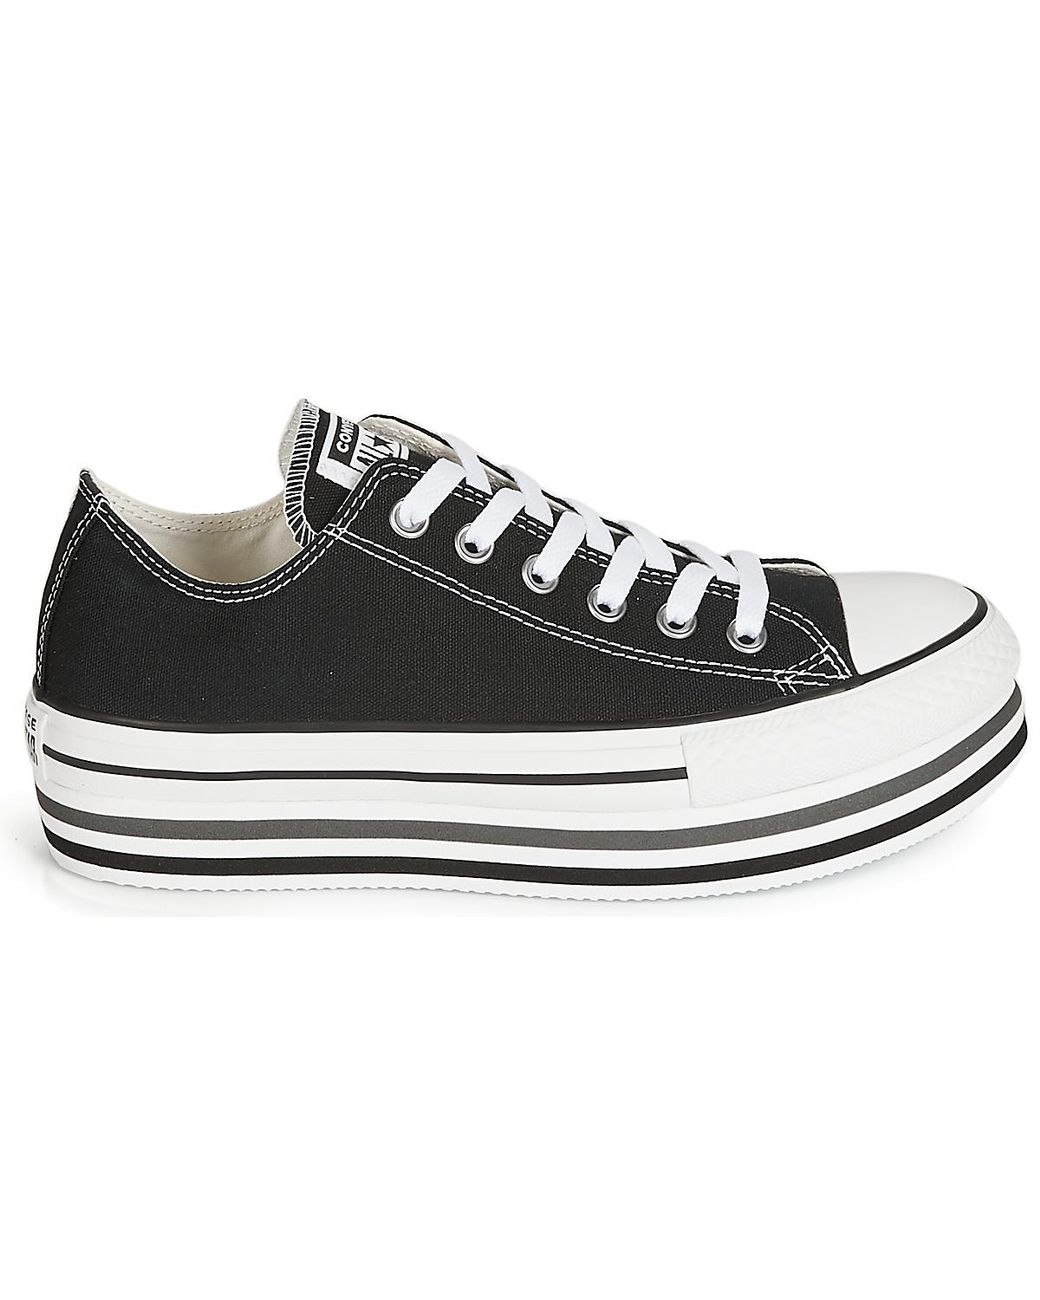 908550cabe5c Converse Chuck Taylor All Star Platform Eva Layer Canvas Ox Shoes (trainers)  in Black - Save 32% - Lyst